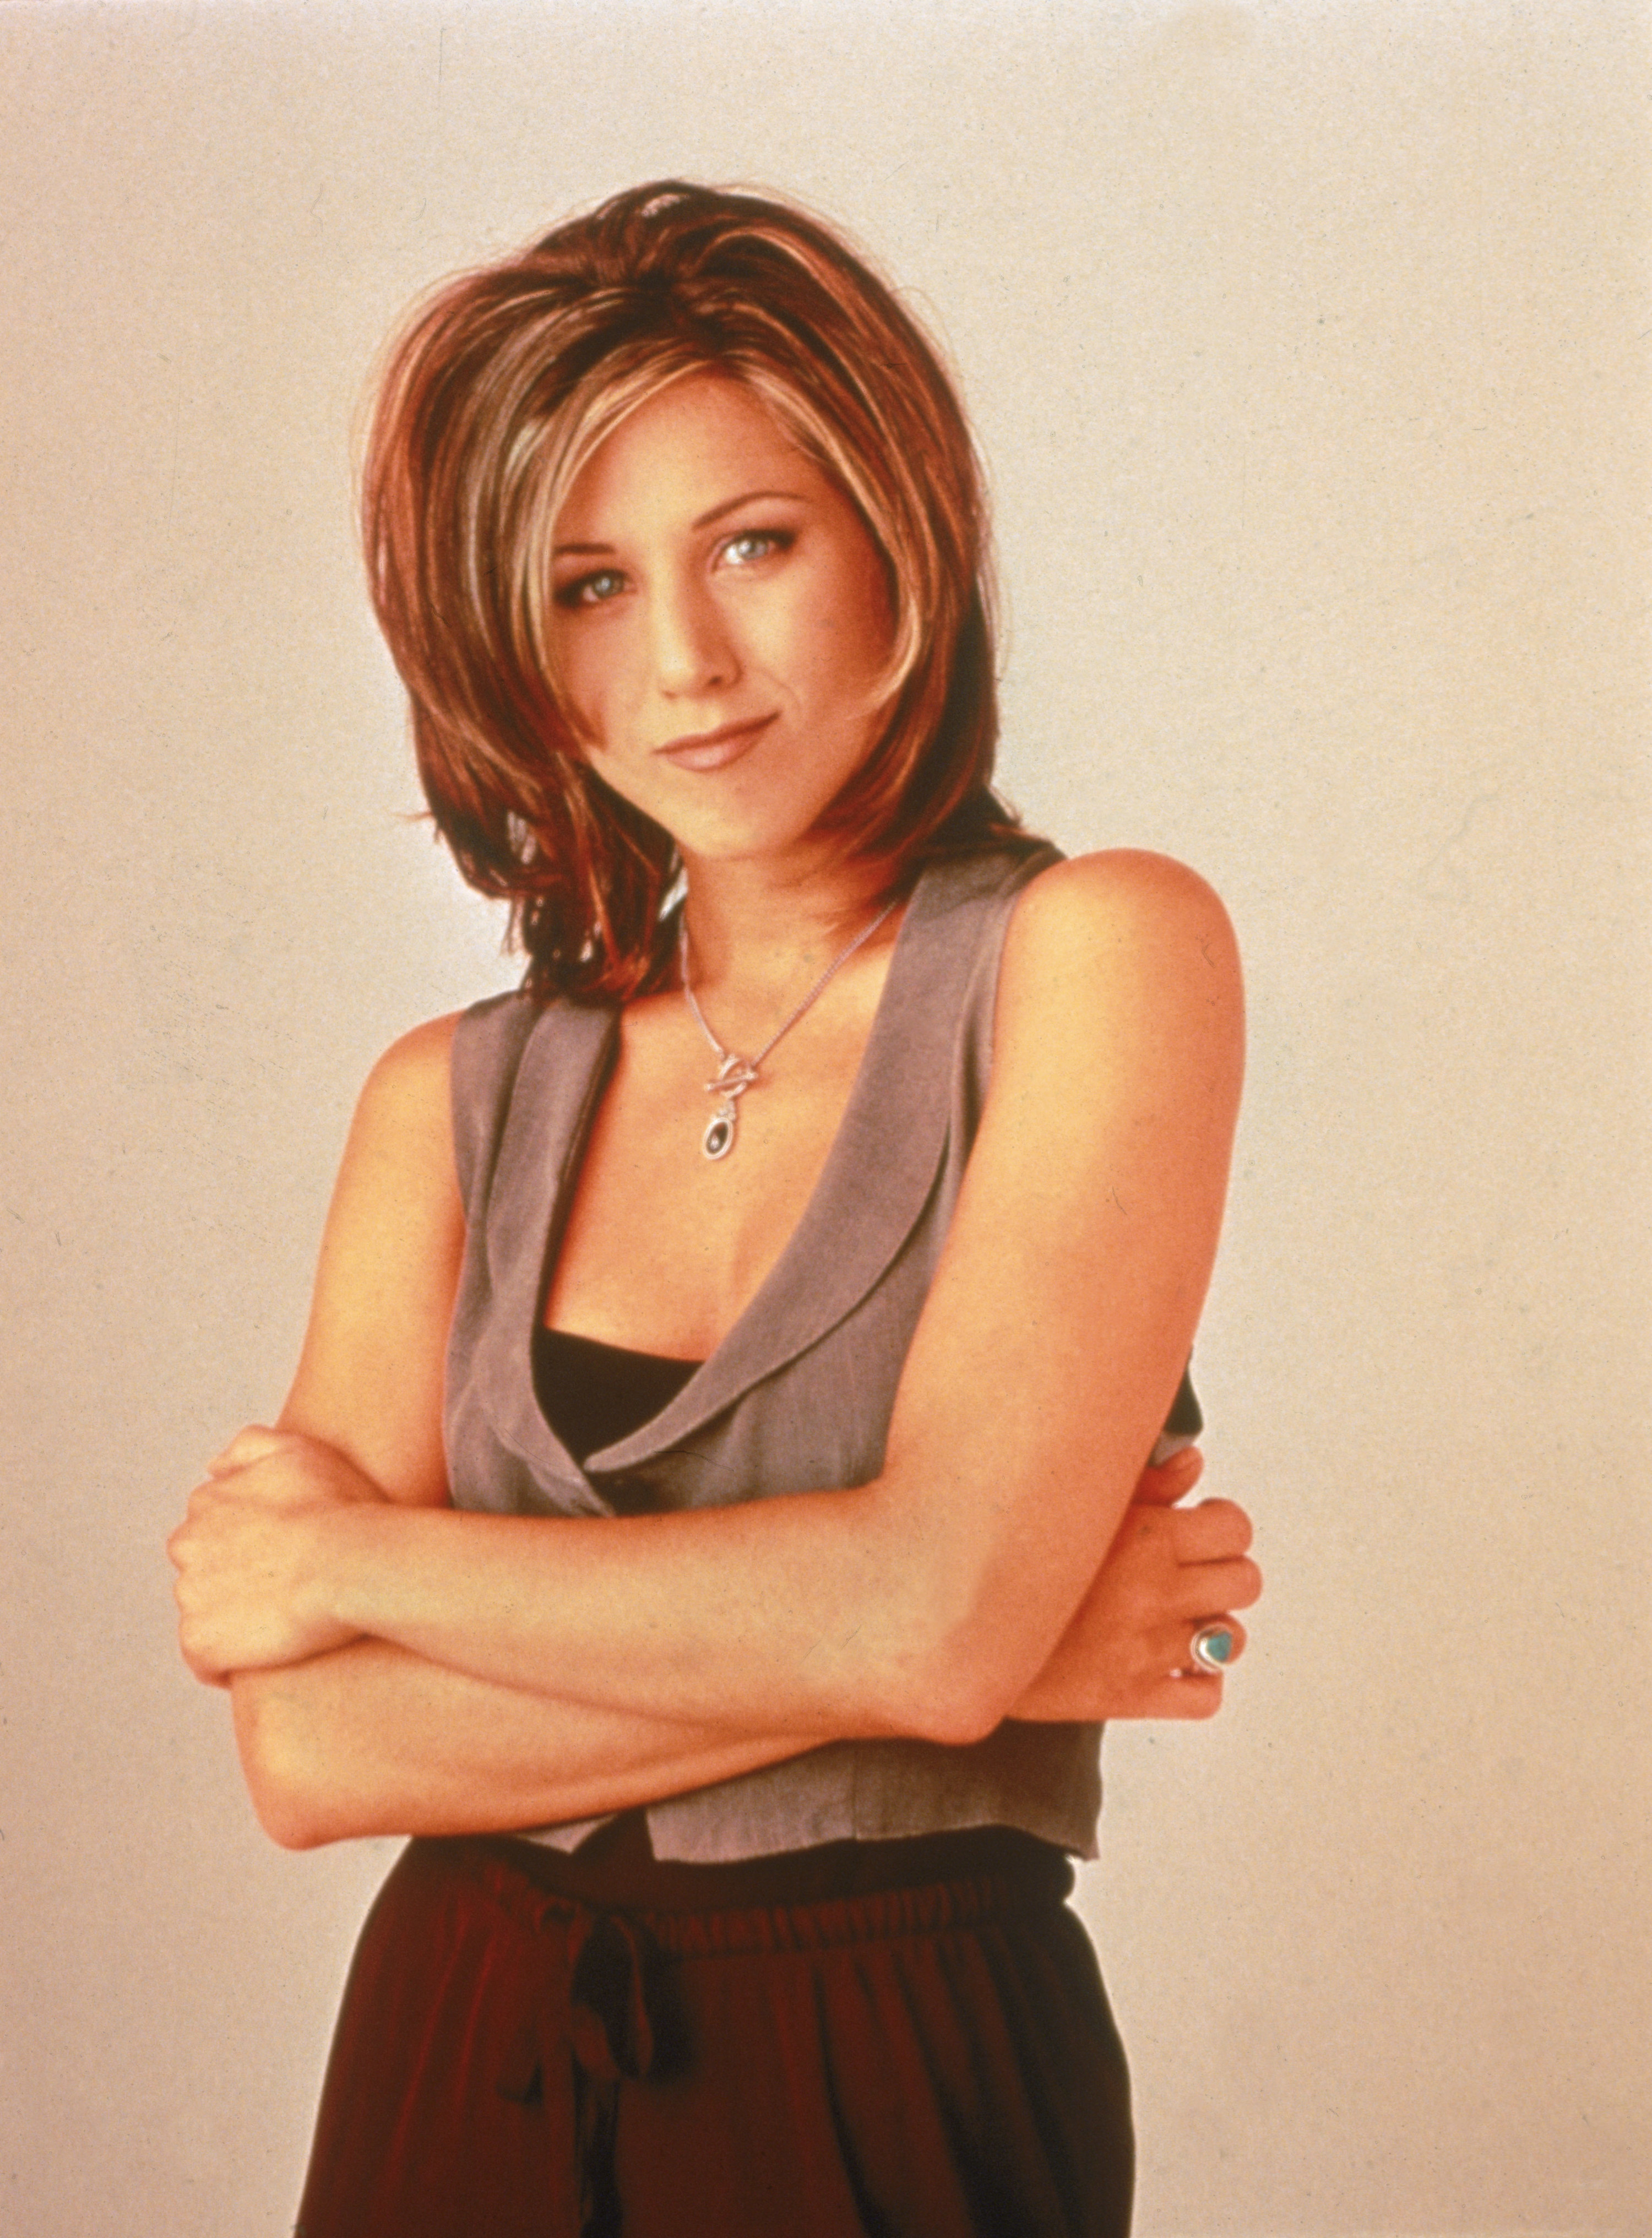 Promotional portrait of American actor Jennifer Aniston for the television series, 'Friends,' taken in 1995